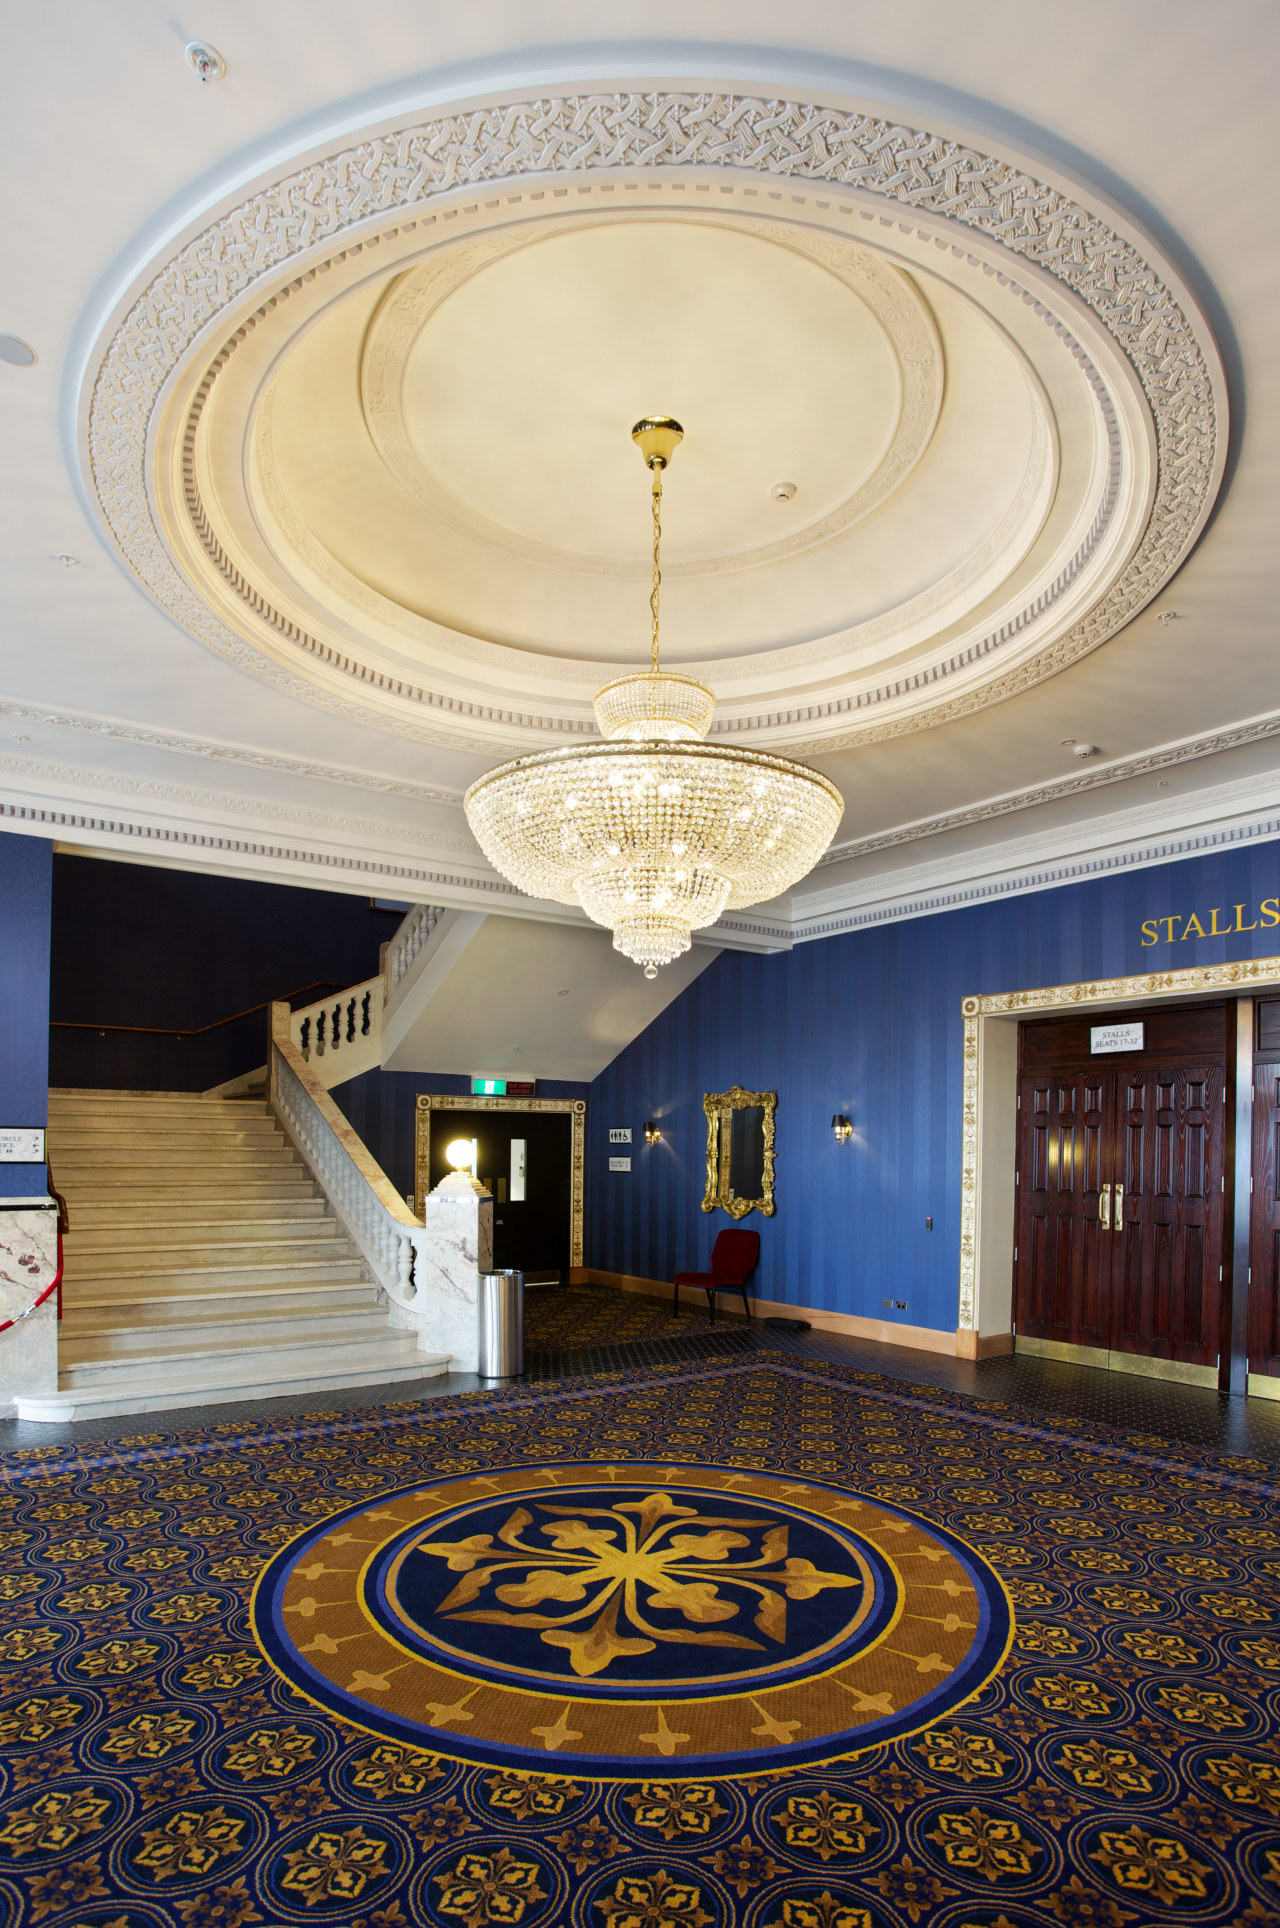 :Custom chandeliers at the Isaac Theatre Royal were architecture, ceiling, column, daylighting, estate, floor, flooring, interior design, lobby, structure, symmetry, wall, gray